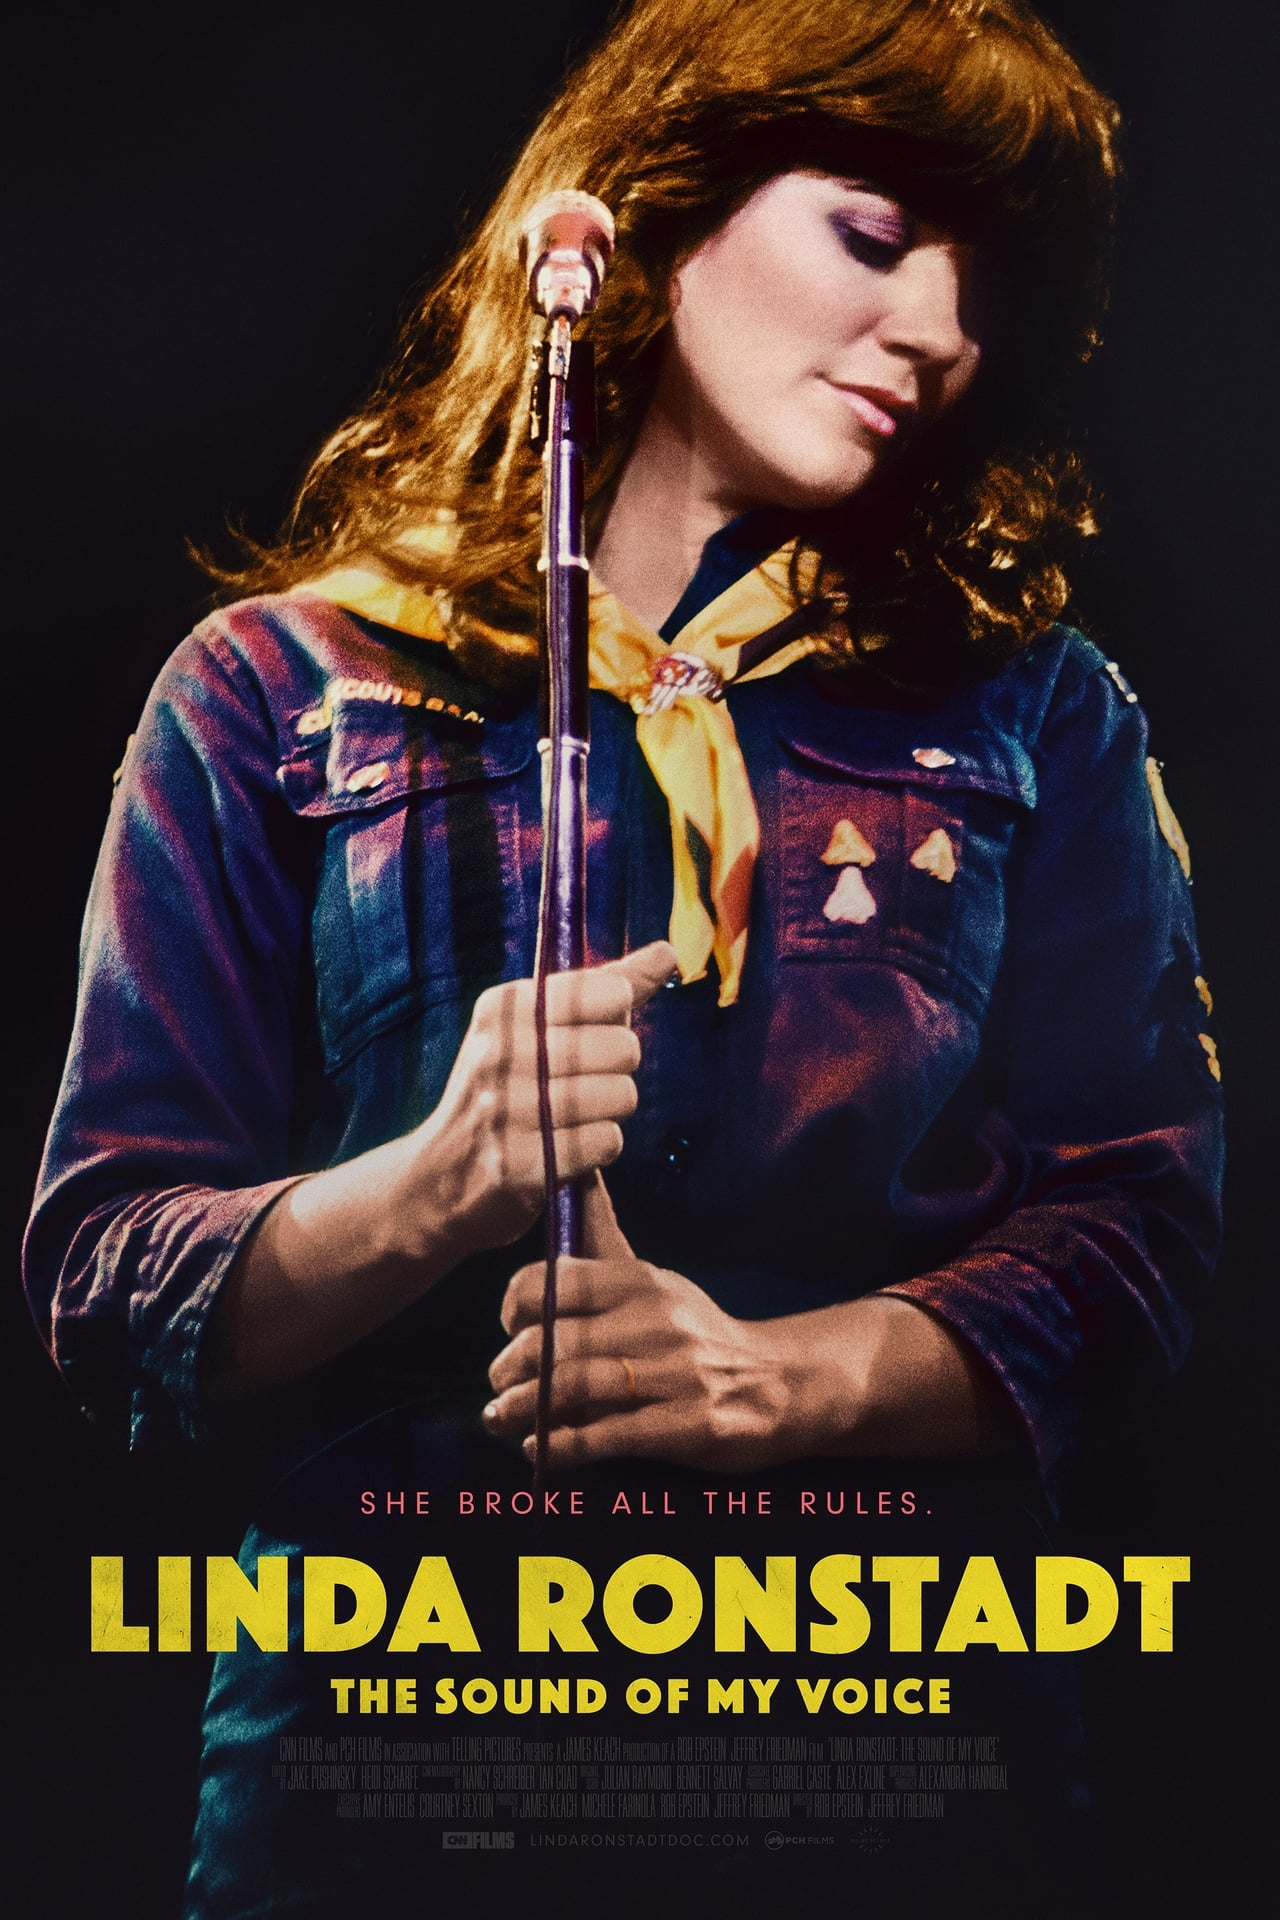 Linda Ronstadt: The Sound of My Voice poster